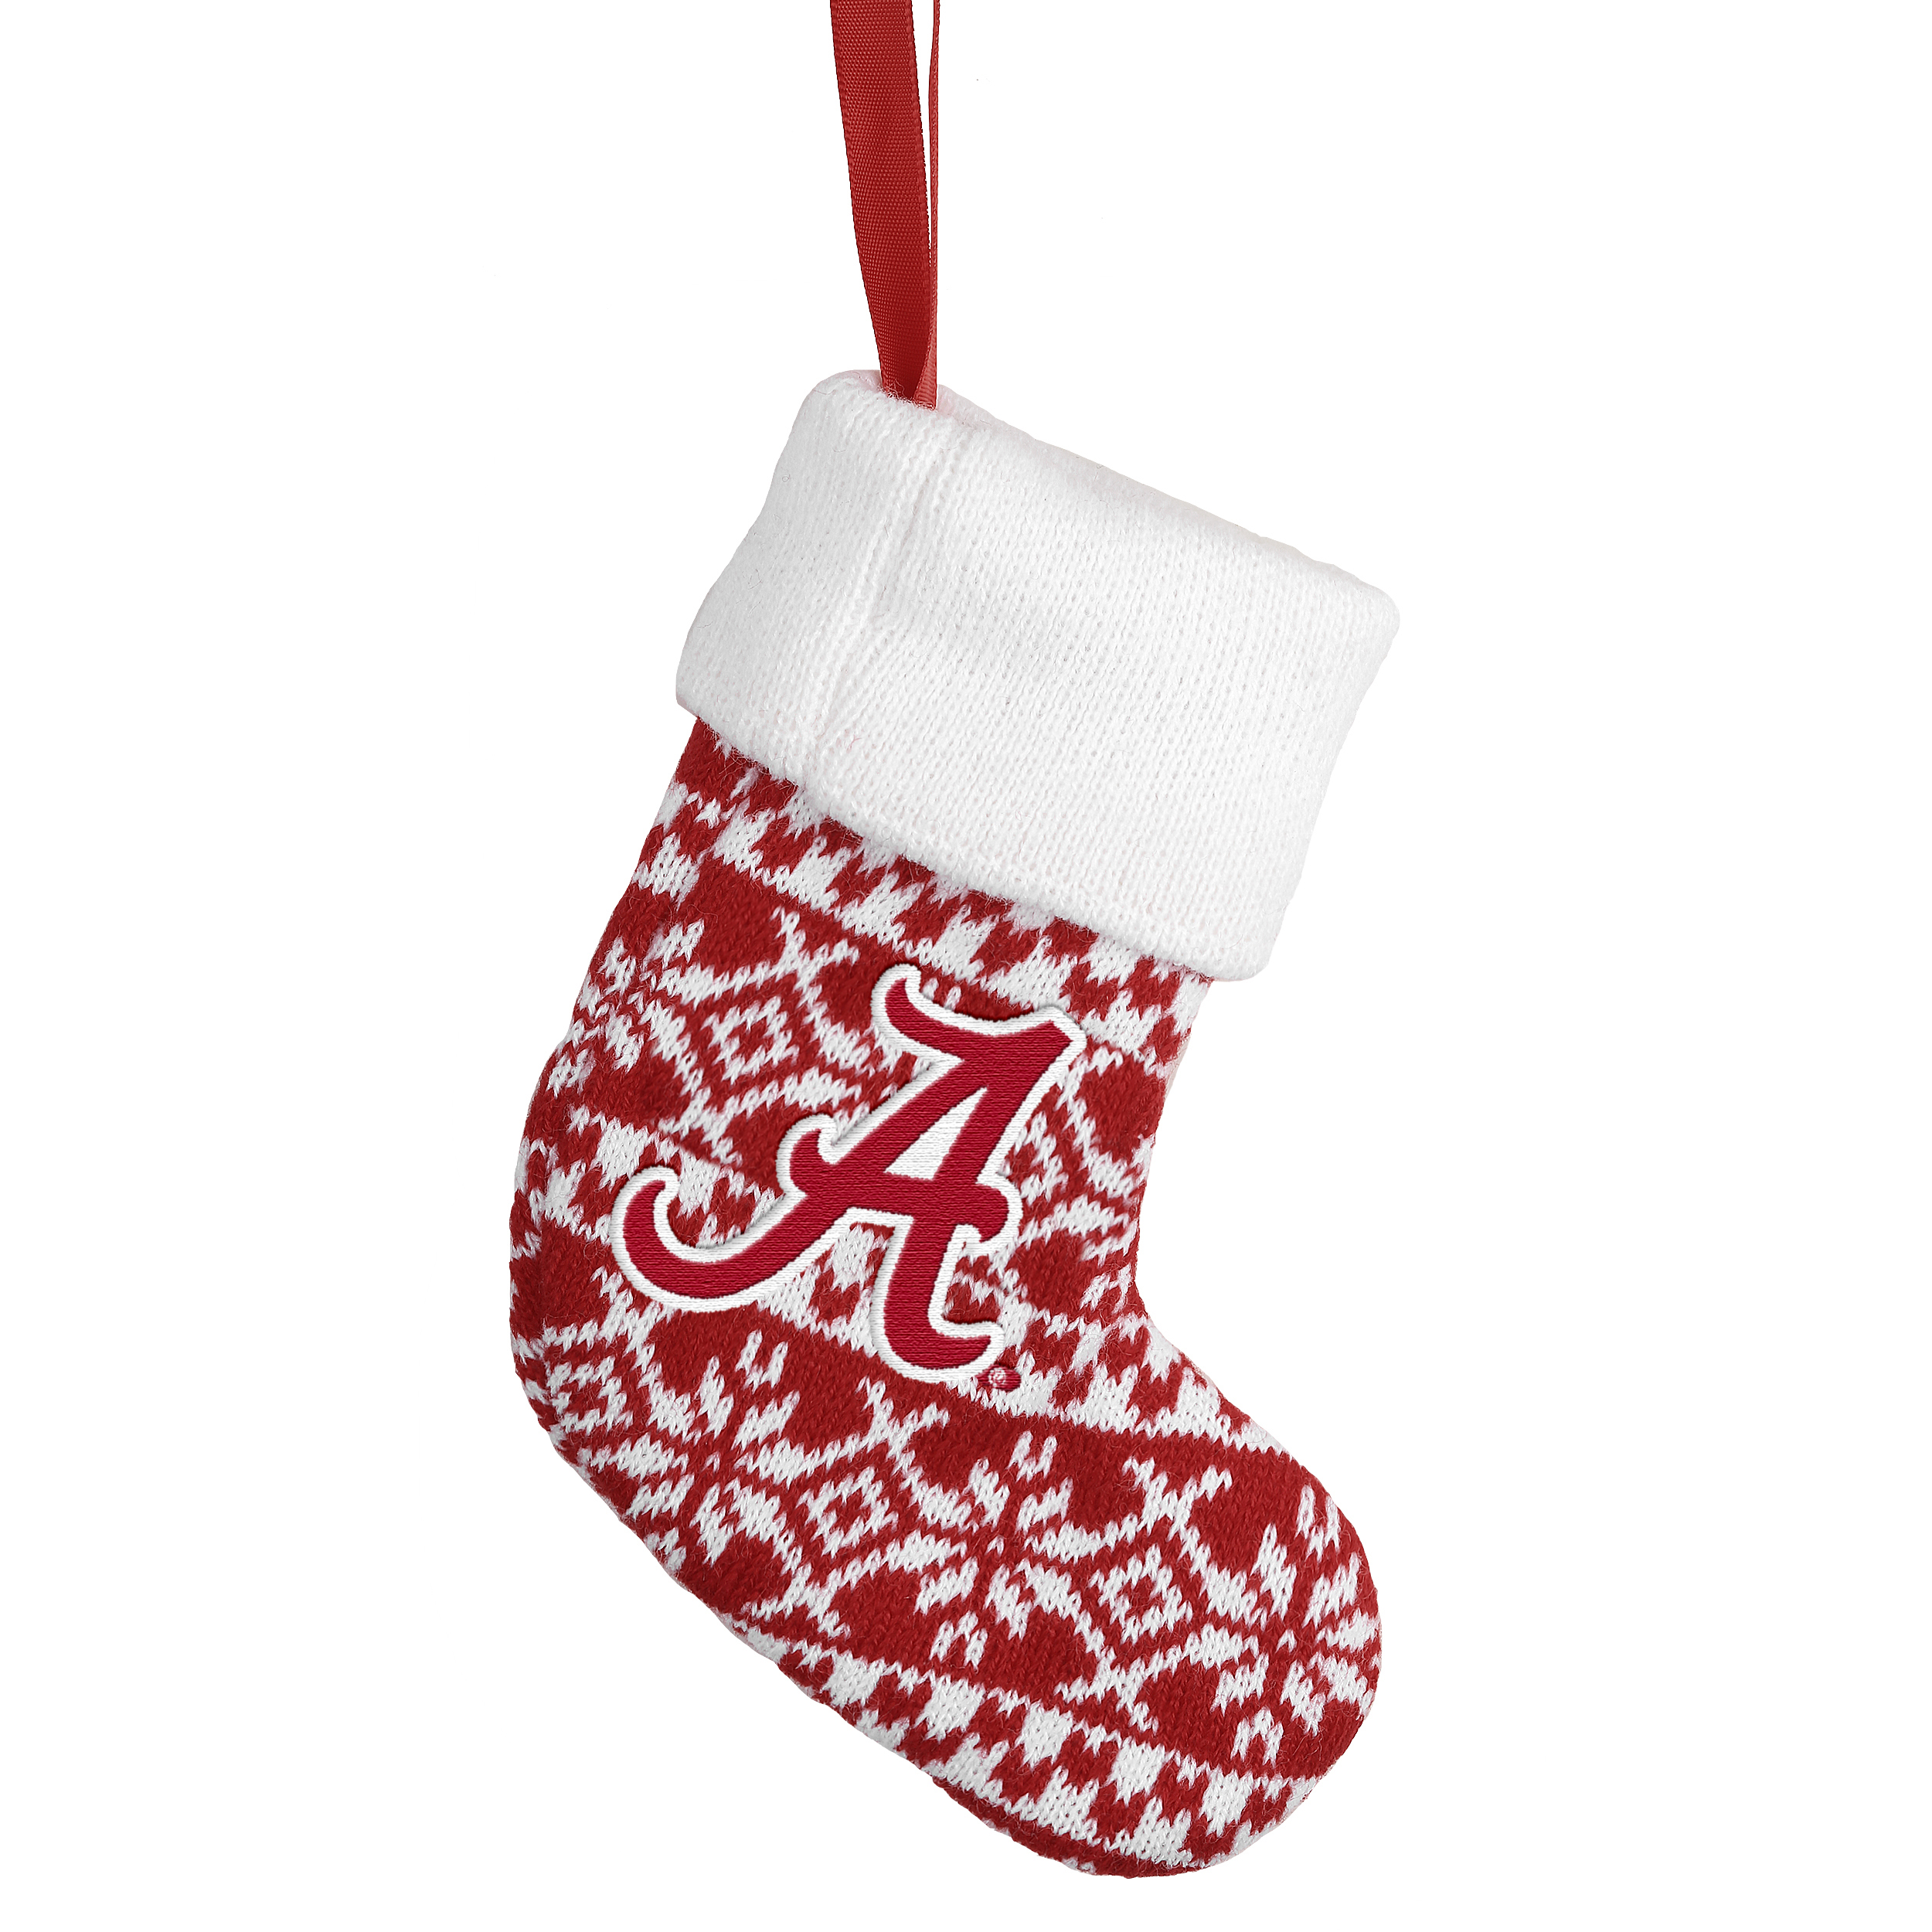 Alabama Crimson Tide Official NCAA Holiday Knit Stocking Christmas Ornament Gift Card Holder by Forever Collectibles 491922